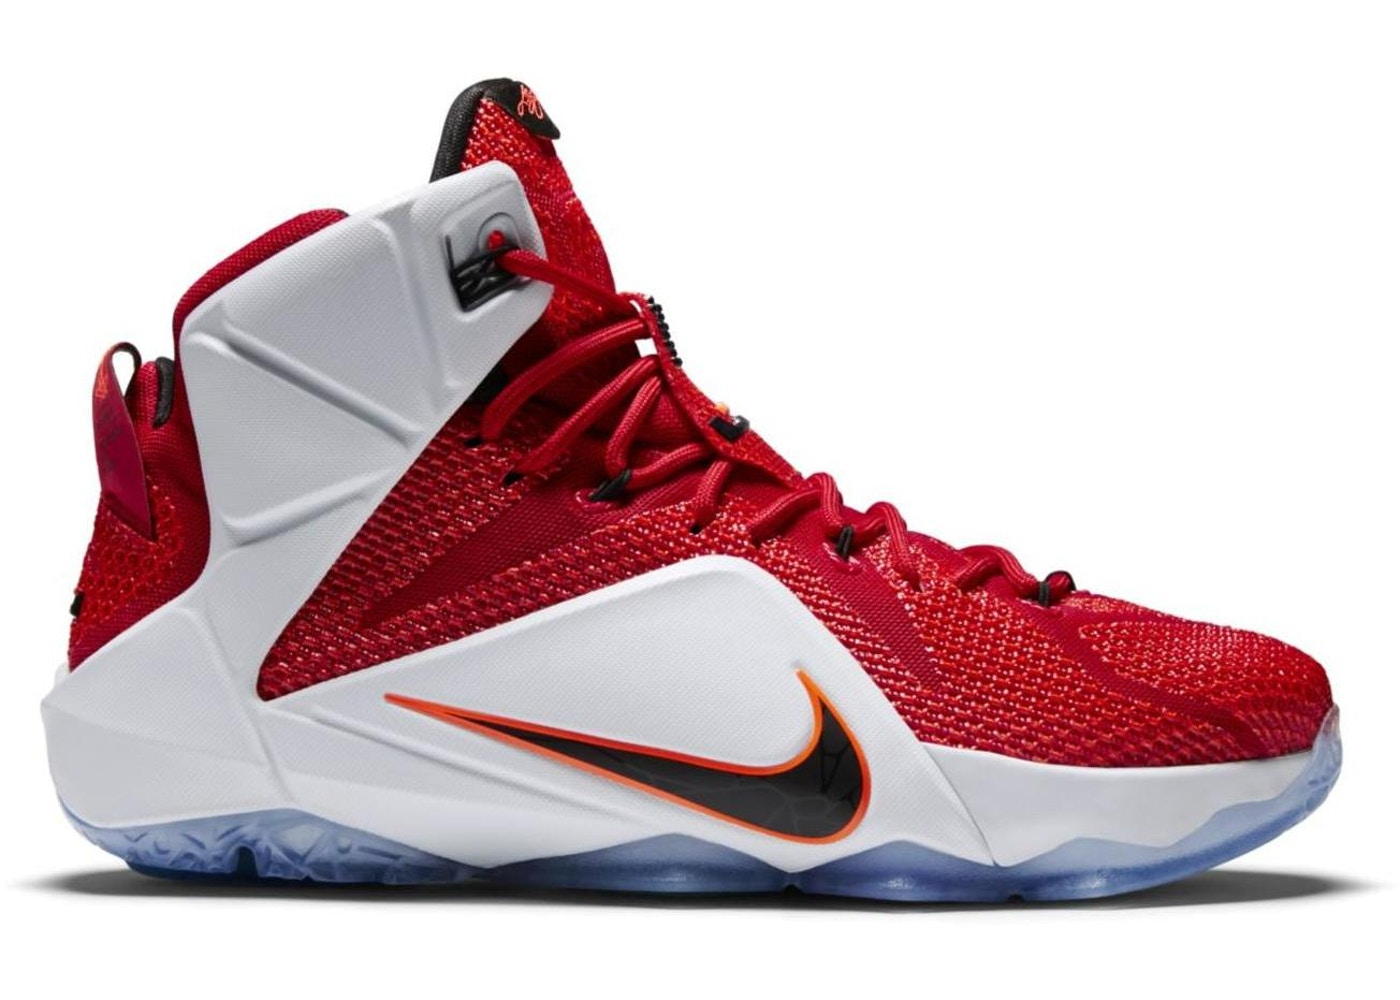 new styles eece6 15ed9 LeBron 12 Heart of a Lion - 684593-601